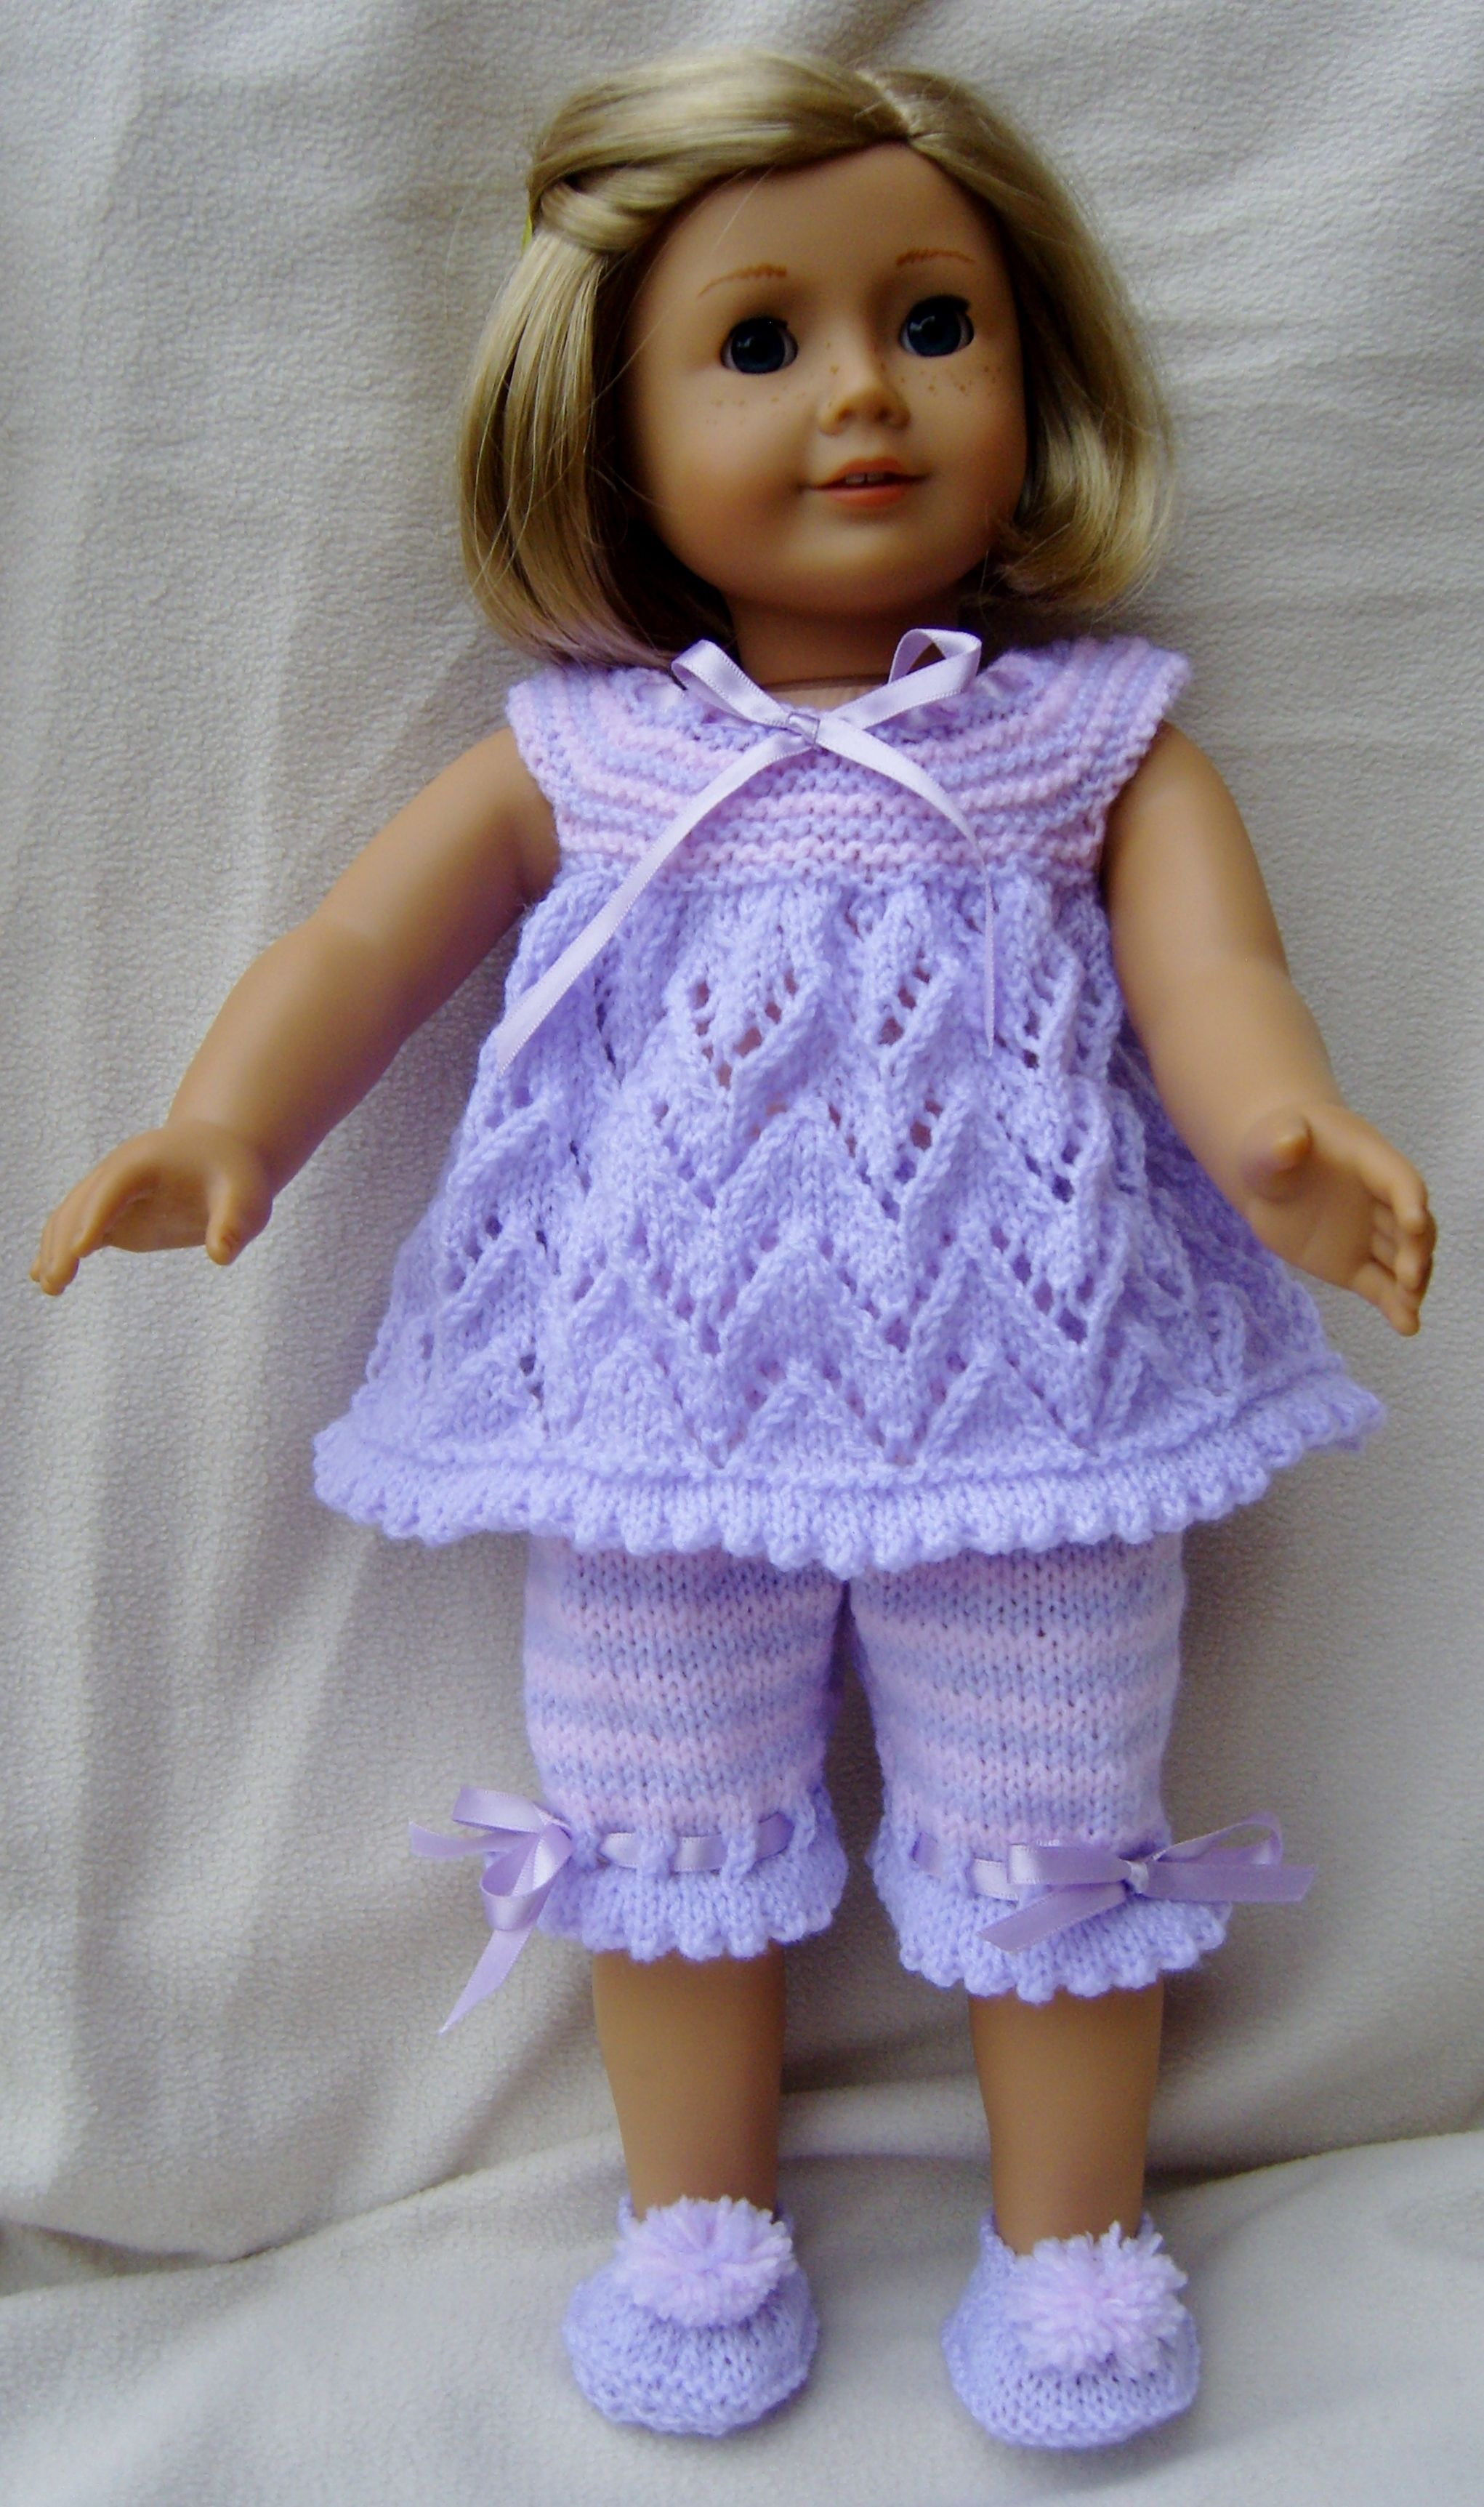 Pin by Nora Burns on Knitting /Crochet Dolls Clothes | Pinterest ...